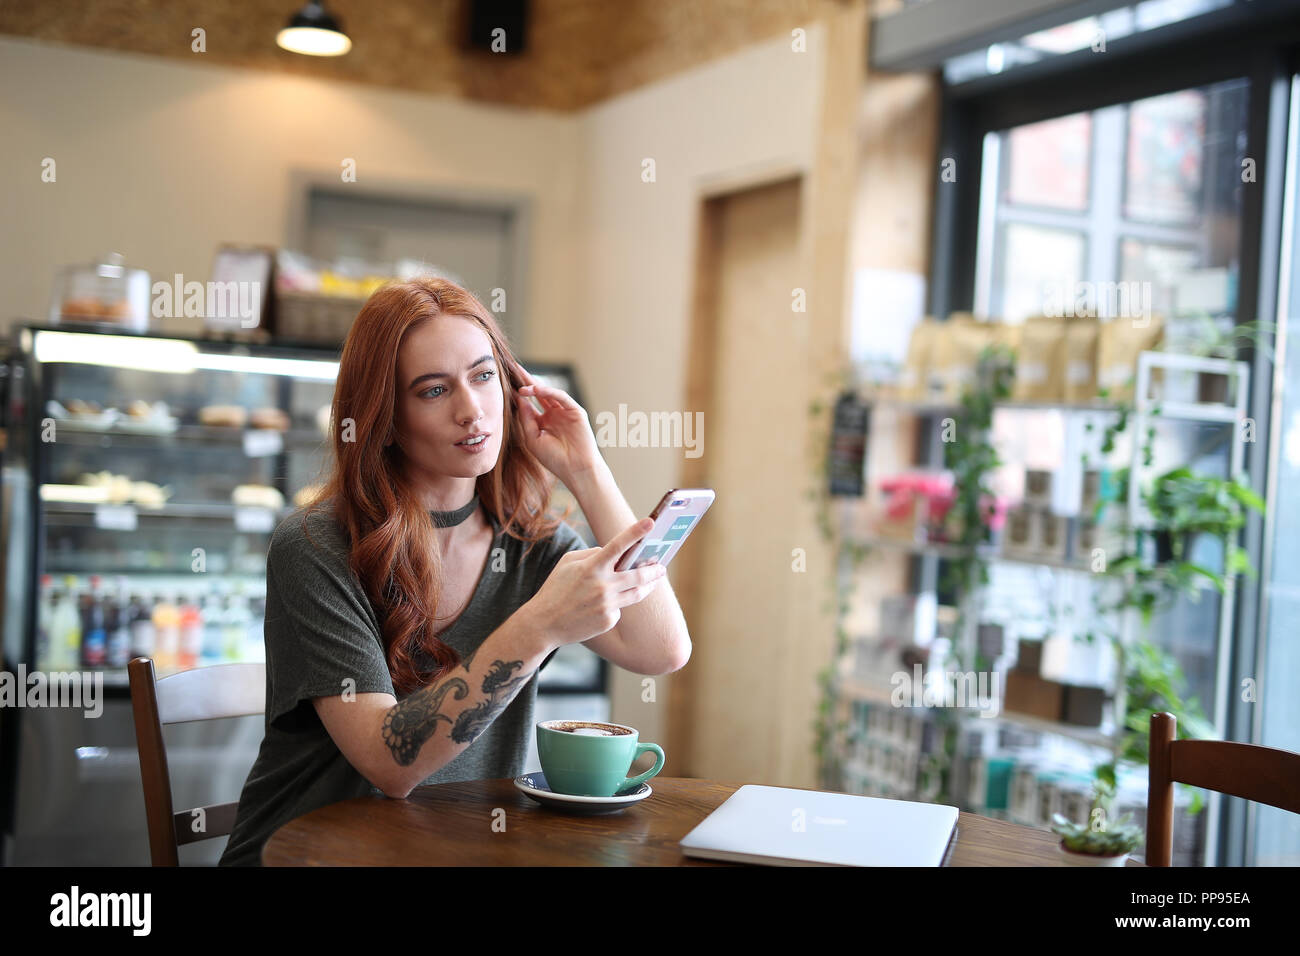 Red Head Girl With Arm Tattoo Sitting Alone In A Cafe Looking At